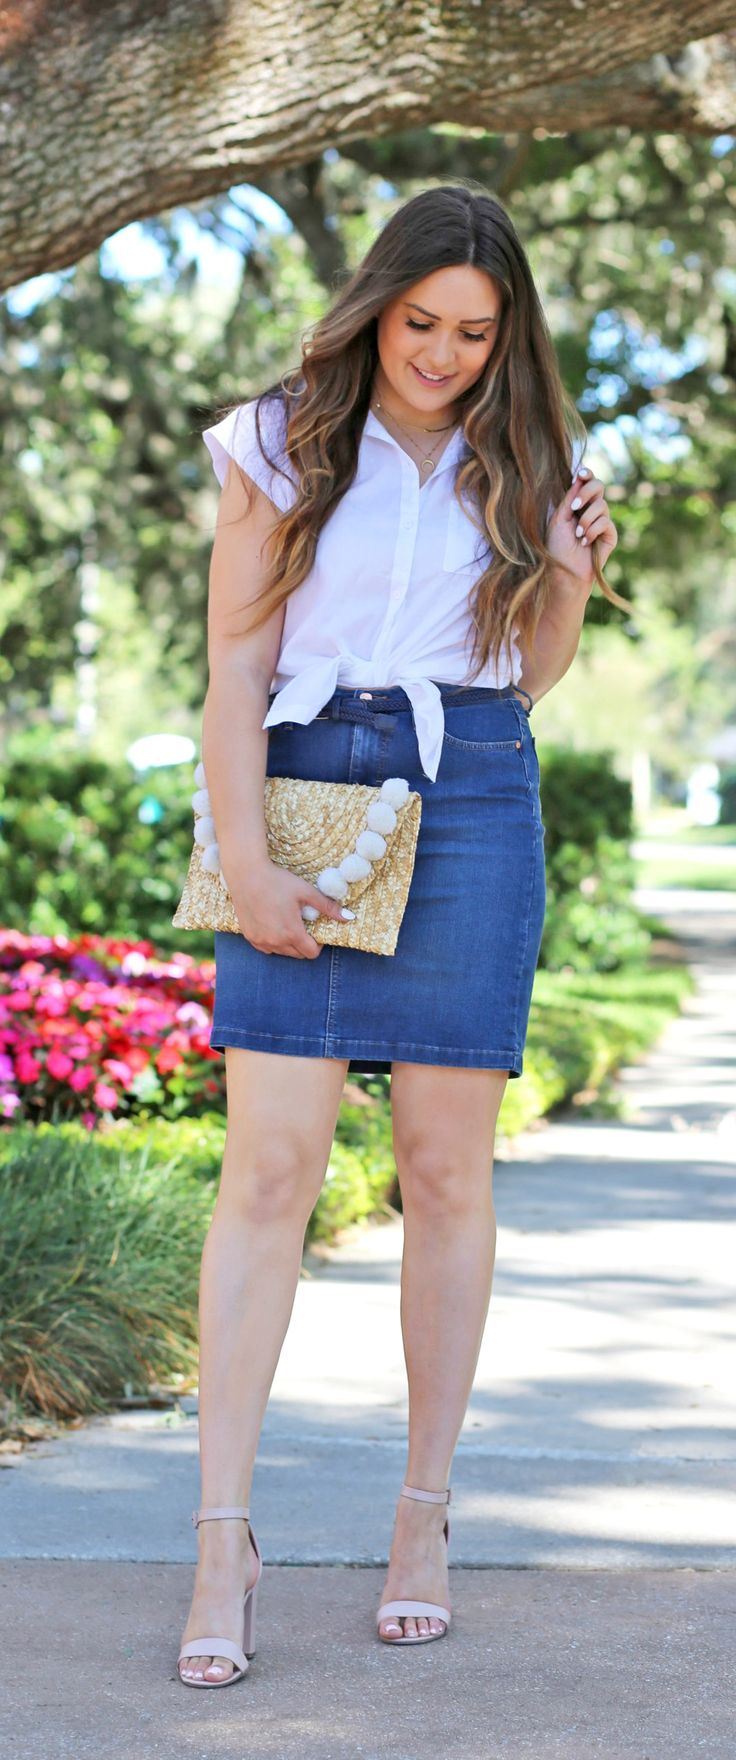 708eb454d Orlando fashion blogger Michelle Kehoe from Mash Elle shares how to style a  denim skirt during spring and summer! She styles the skirt with a white ...